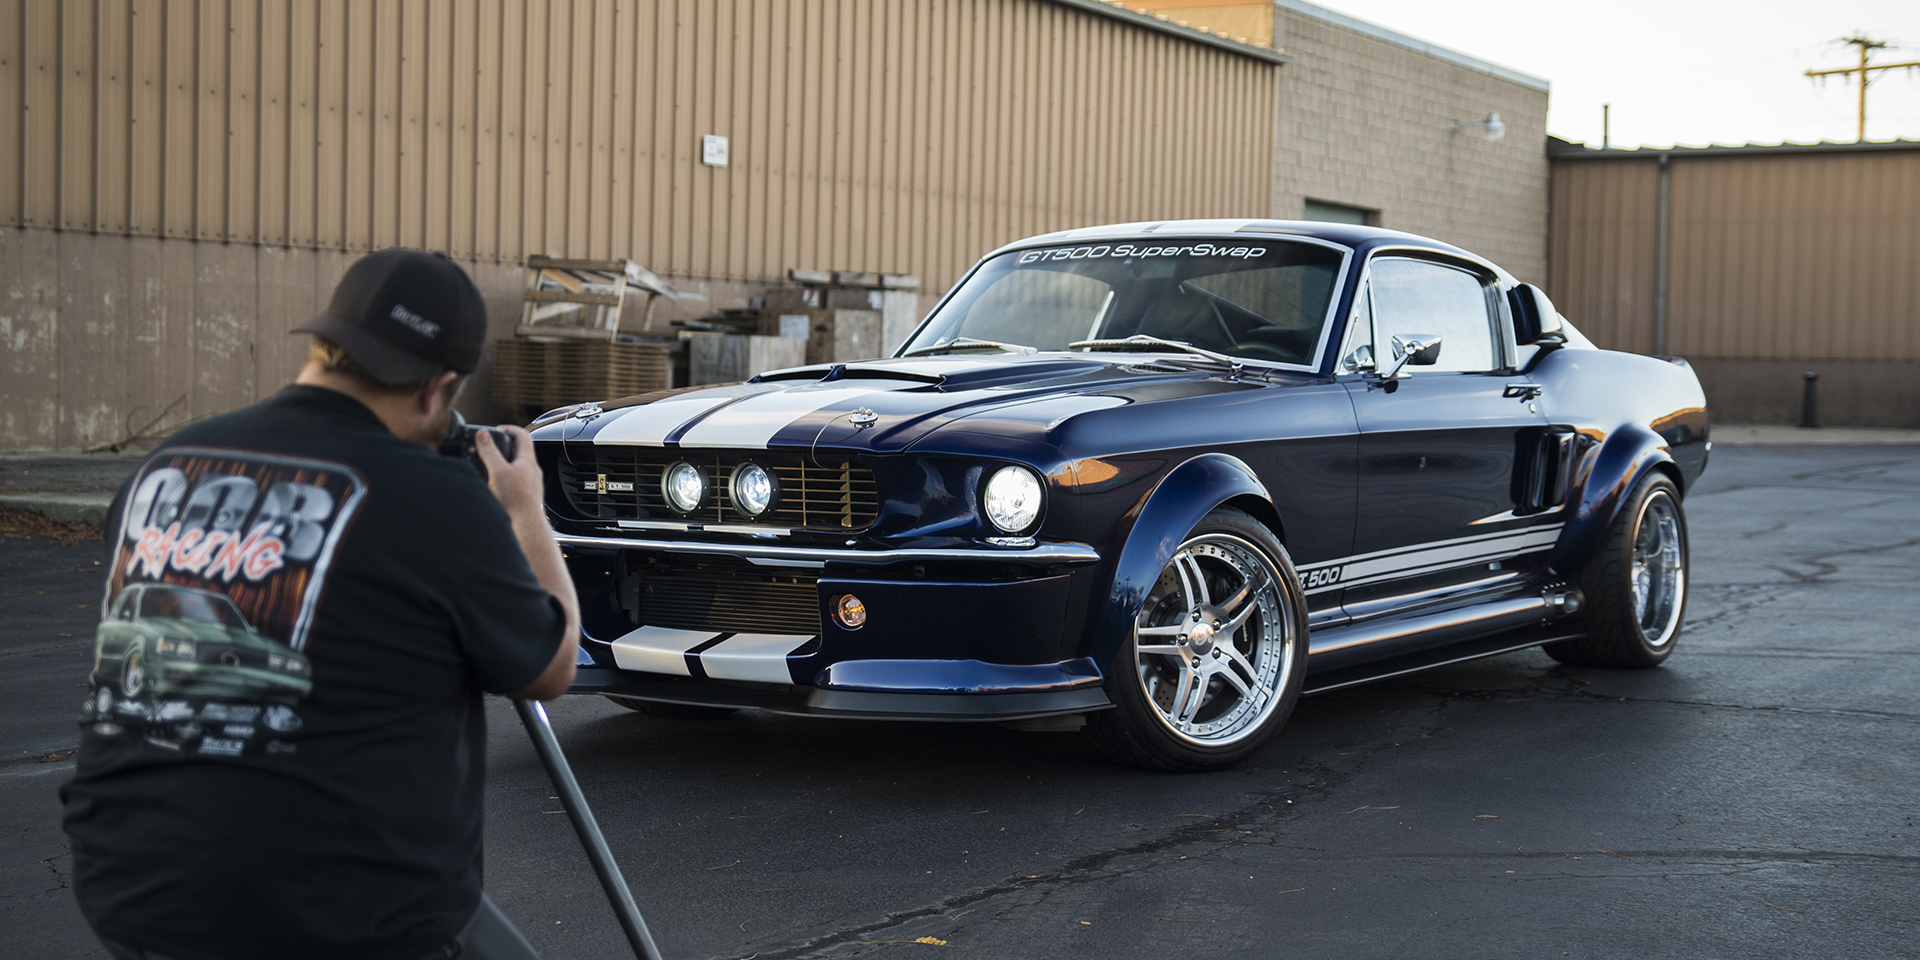 One outrageous '1967' Shelby GT500 Mustang: Watch this 4 ...